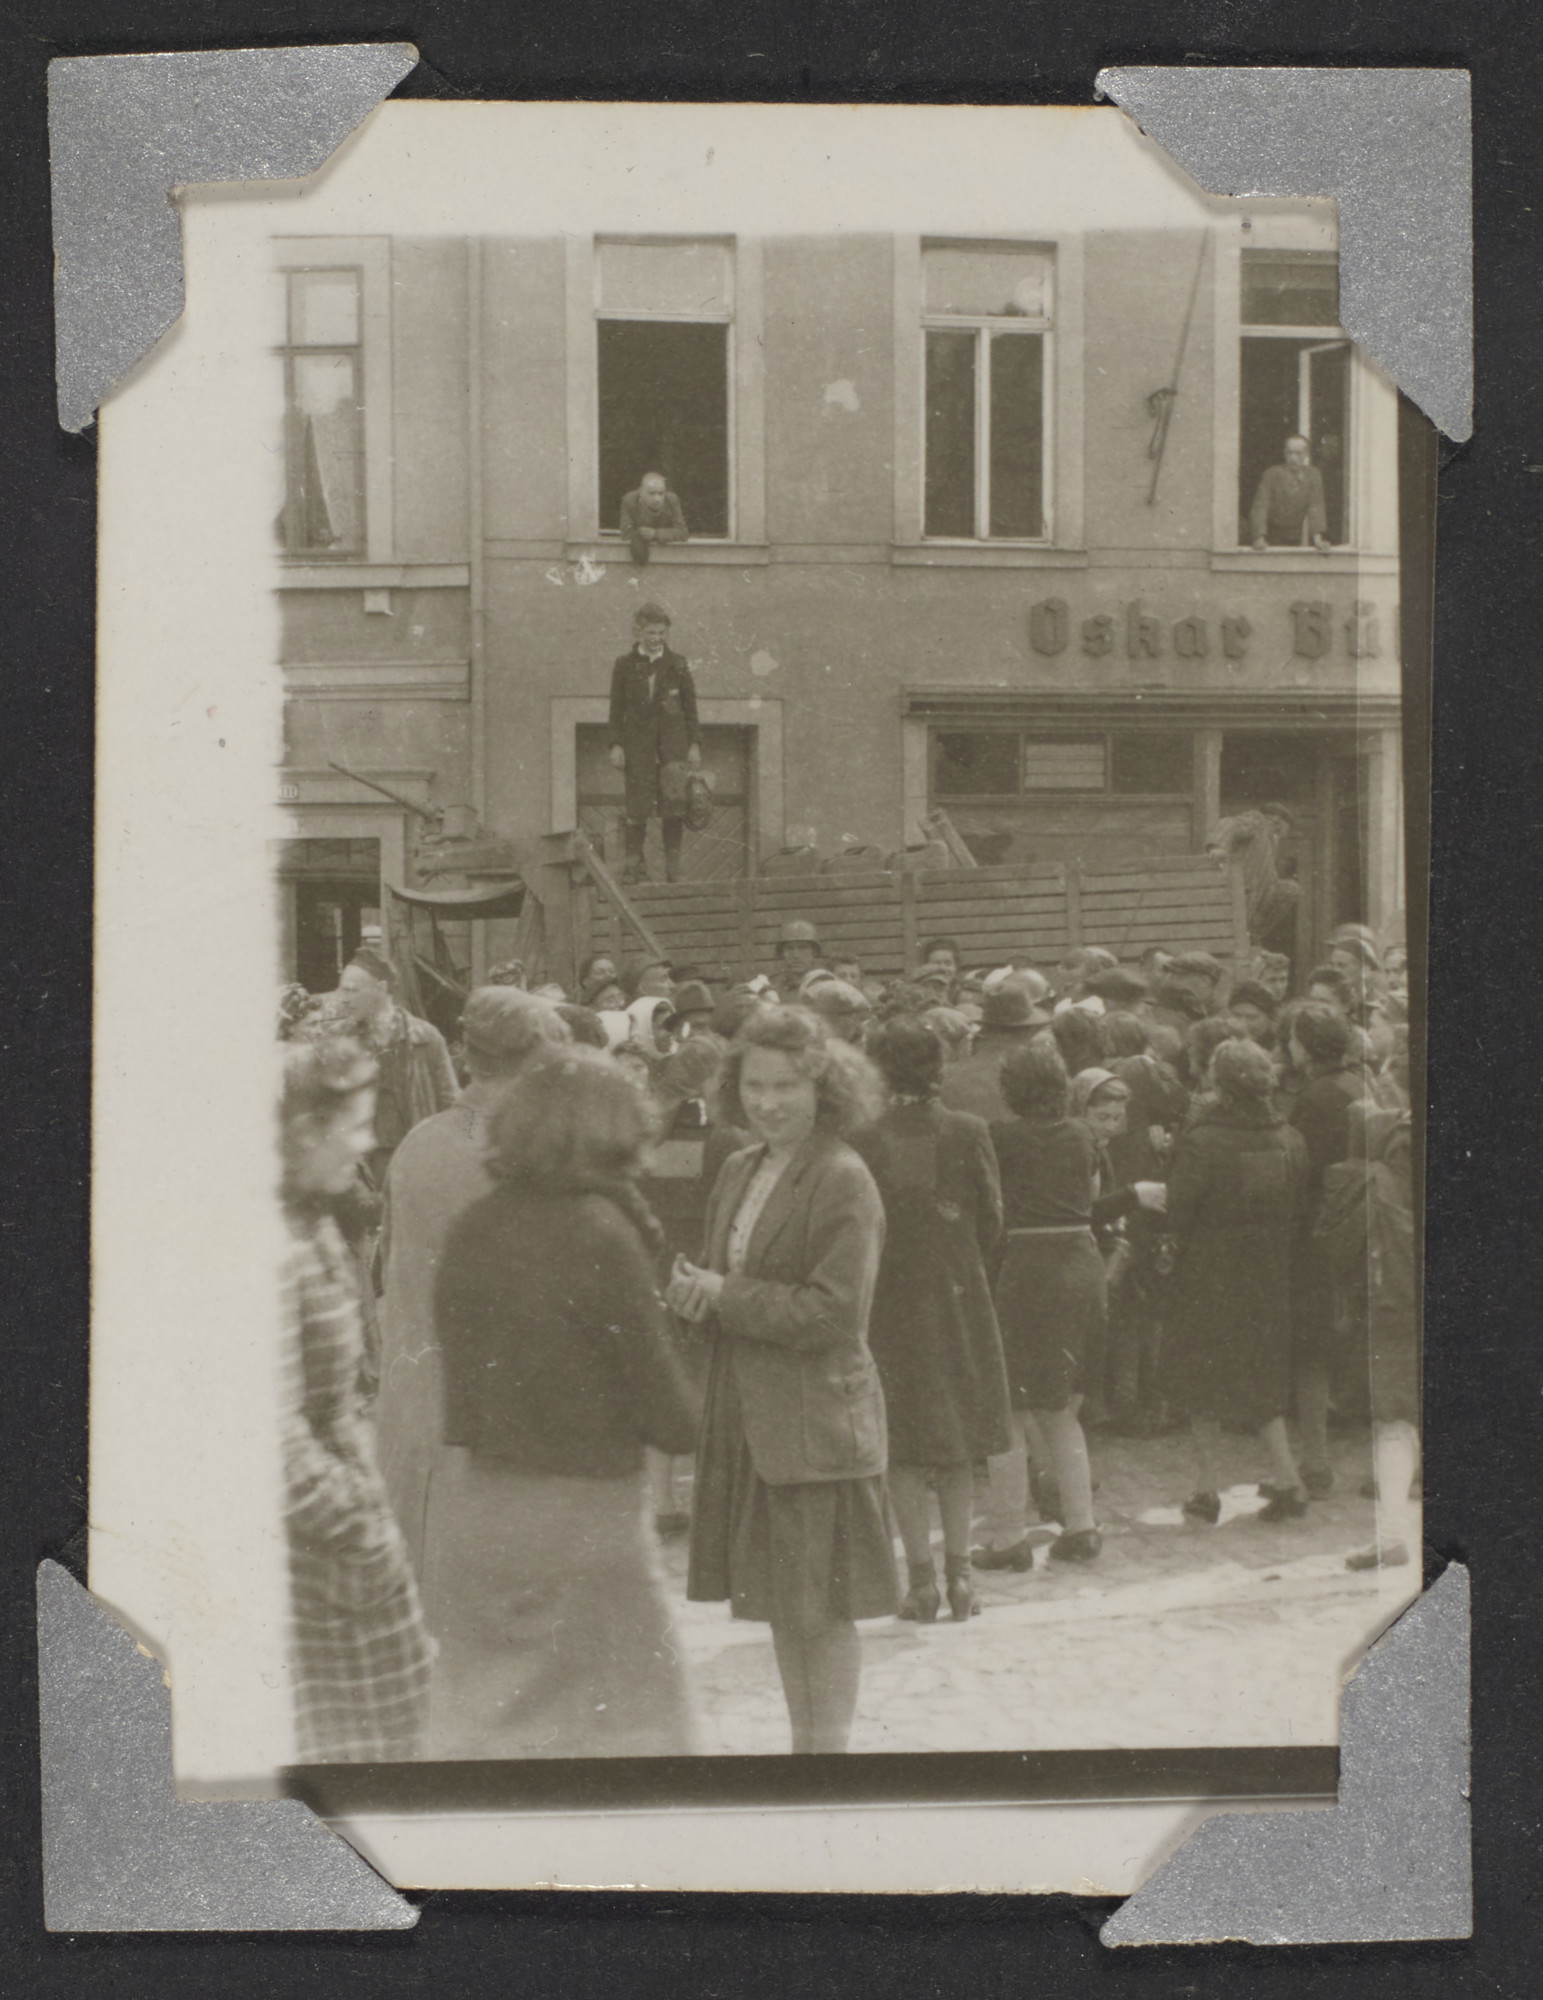 Crowds of Hungarian Jewish refugees gather in the street.